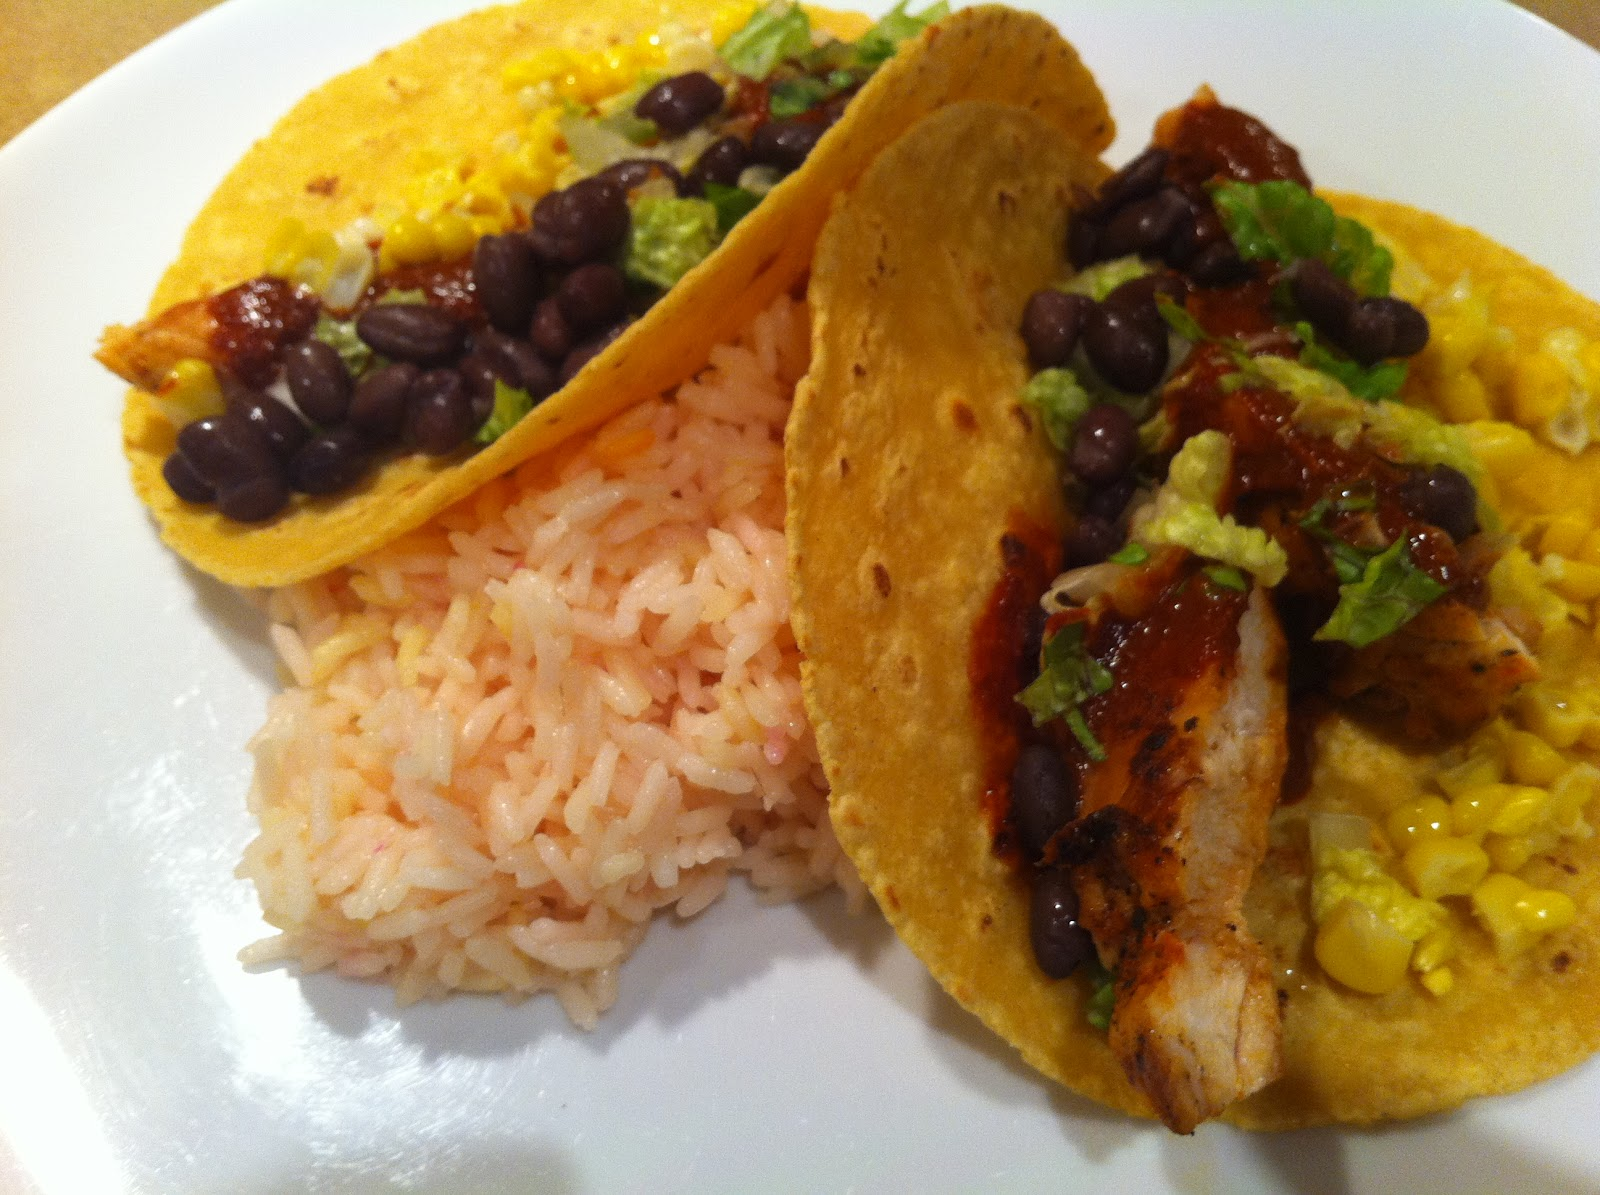 Monday: Chicken tacos with Mole sauce, black beans and corn...and ...